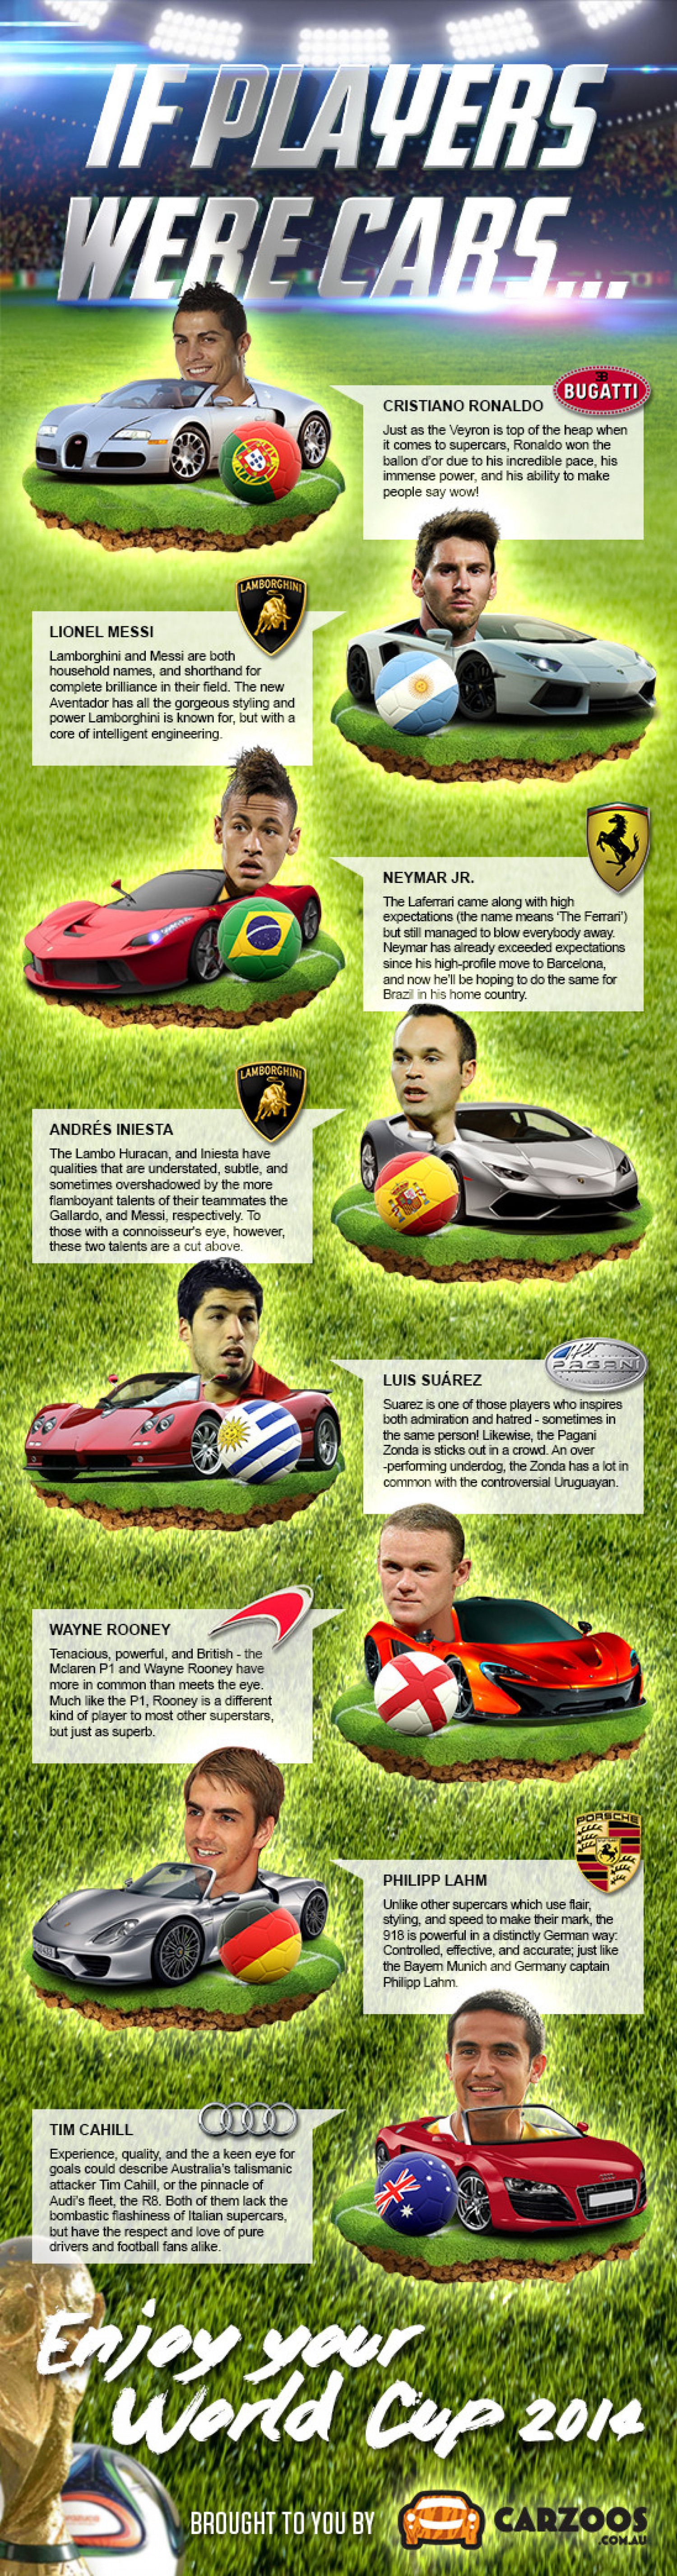 If Players Were Cars Infographic